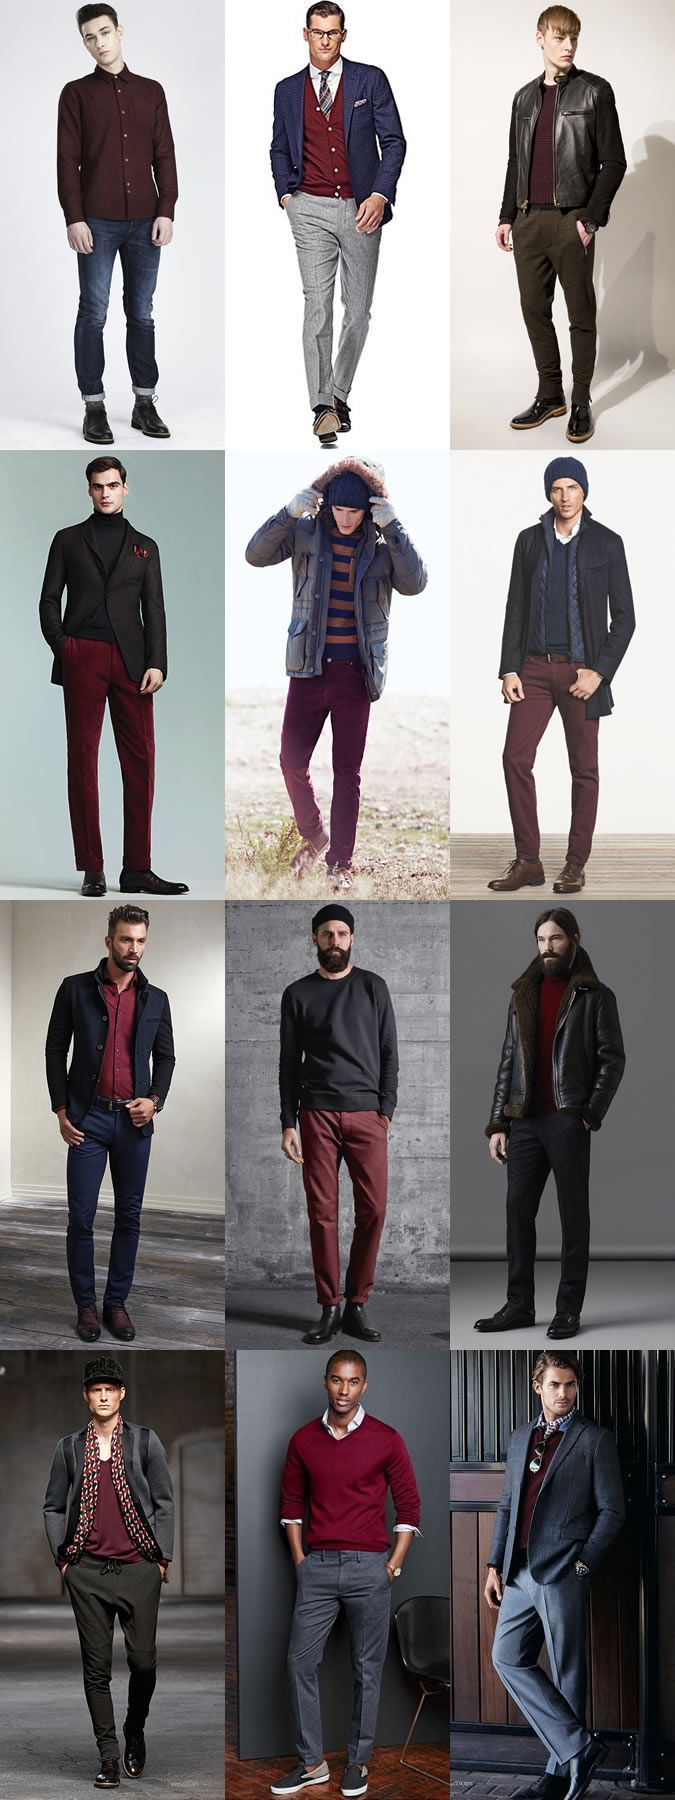 Men's Fashion Guide: 2014 Autumn/Winter Ways To Wear Burgundy Staples Lookbook Inspiration Women, Men and Kids Outfit Ideas on our website at 7ootd.com #ootd #7ootd